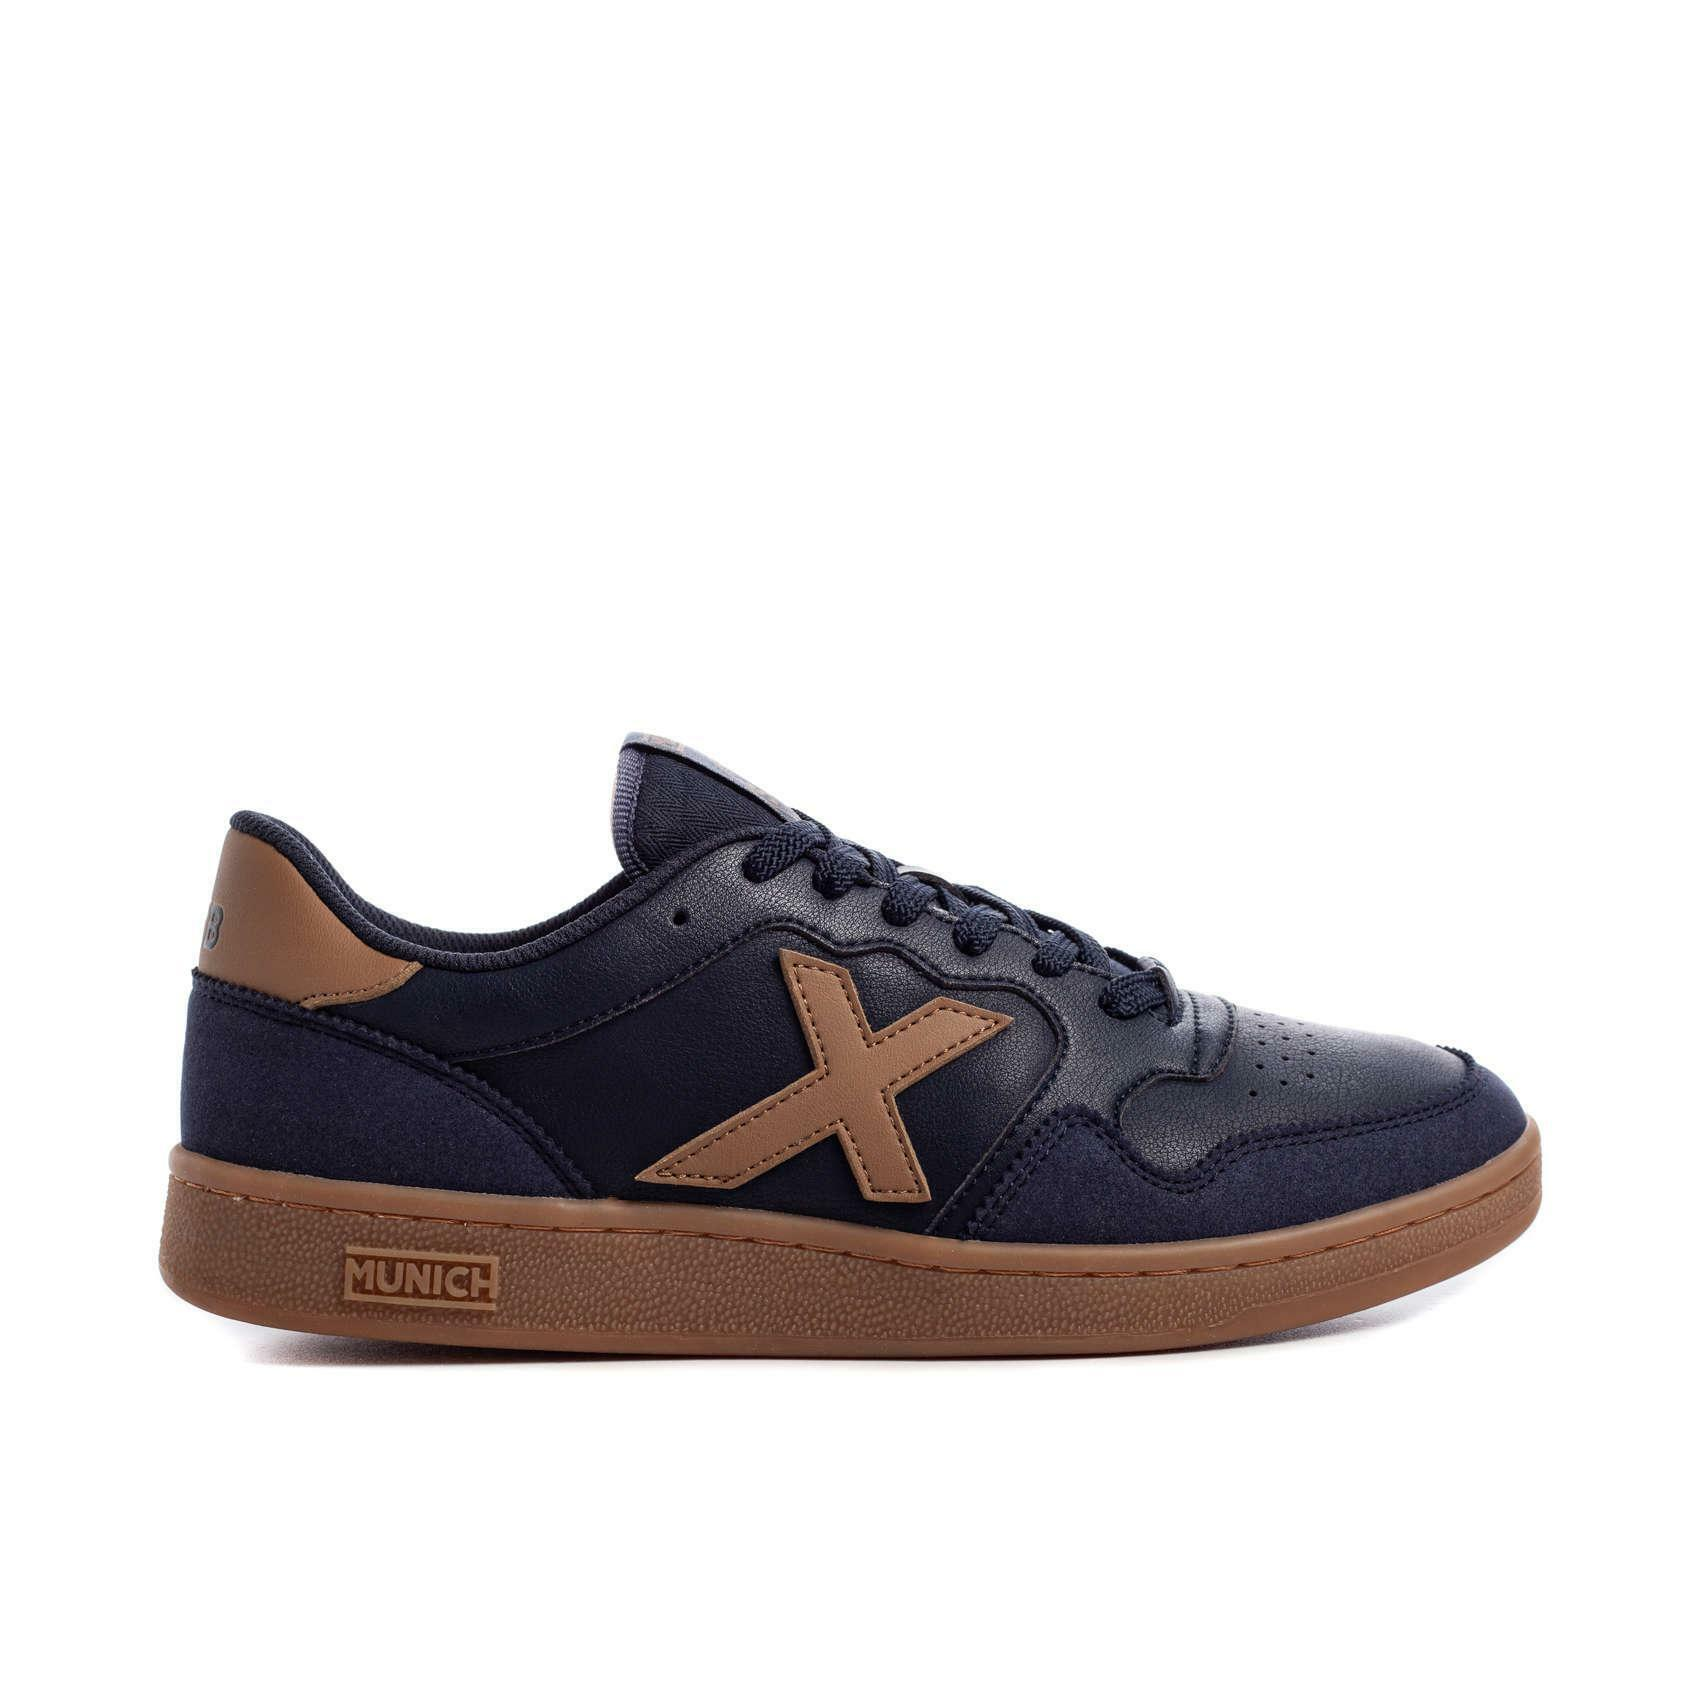 munich munich scarpa sneaker arrow blu